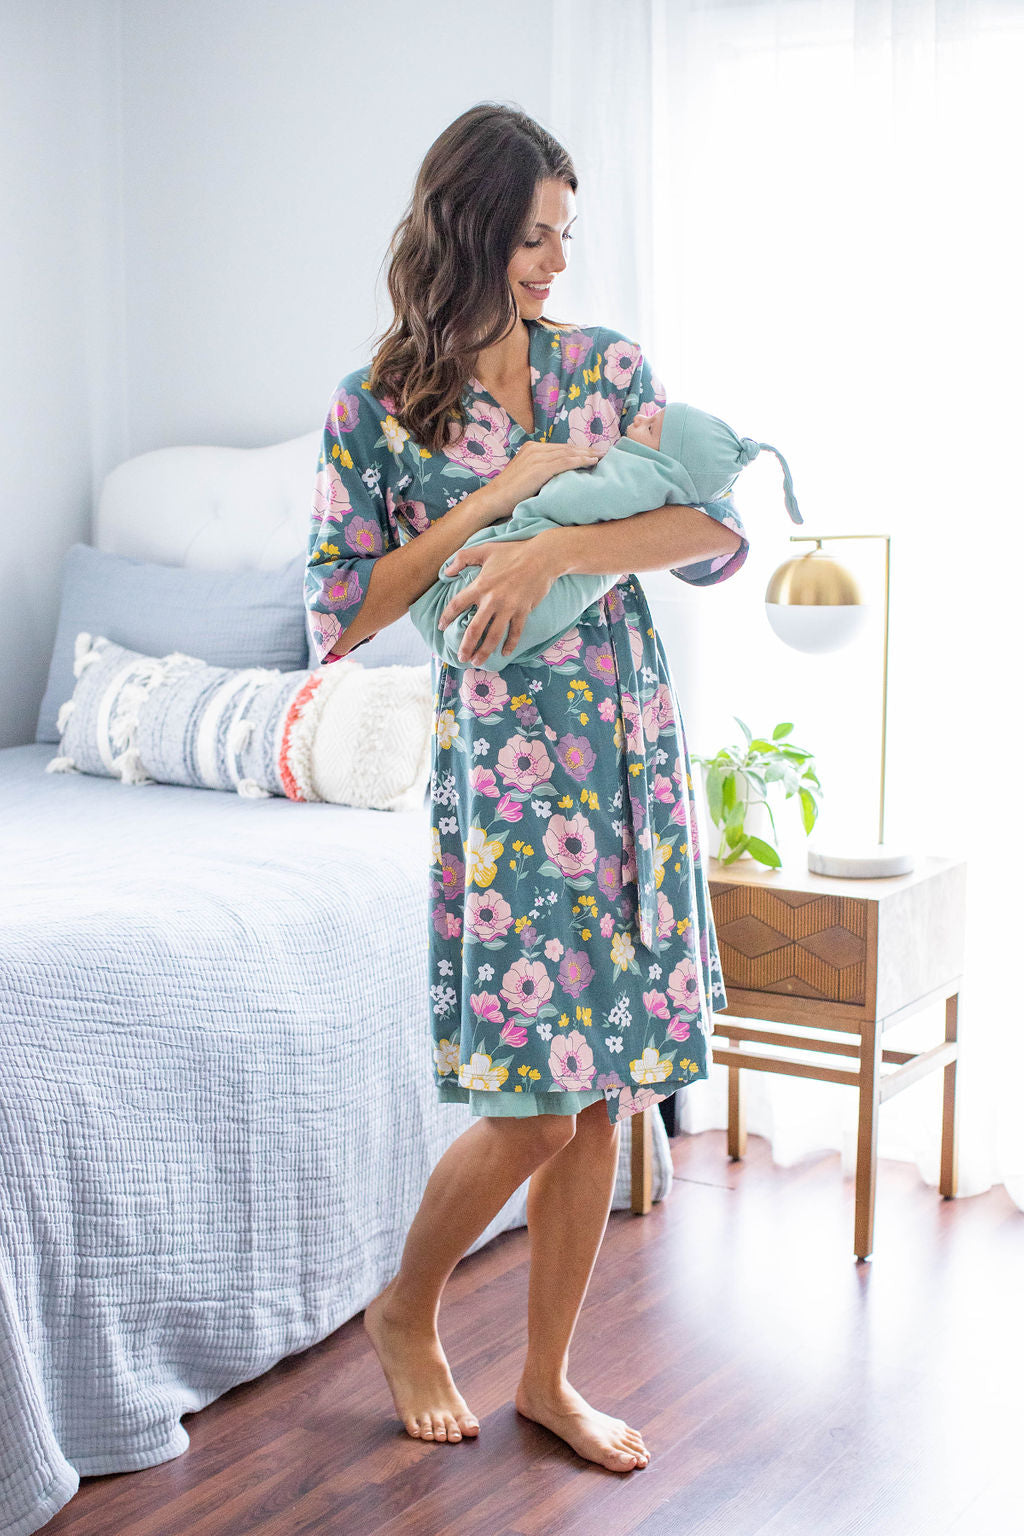 Swaddle your little one in a Sage swaddle blanket to coordinate with your Charlotte robe. Pink flowers against a deep green background. Pink and yellow floral printed robe for ultimate comfort.